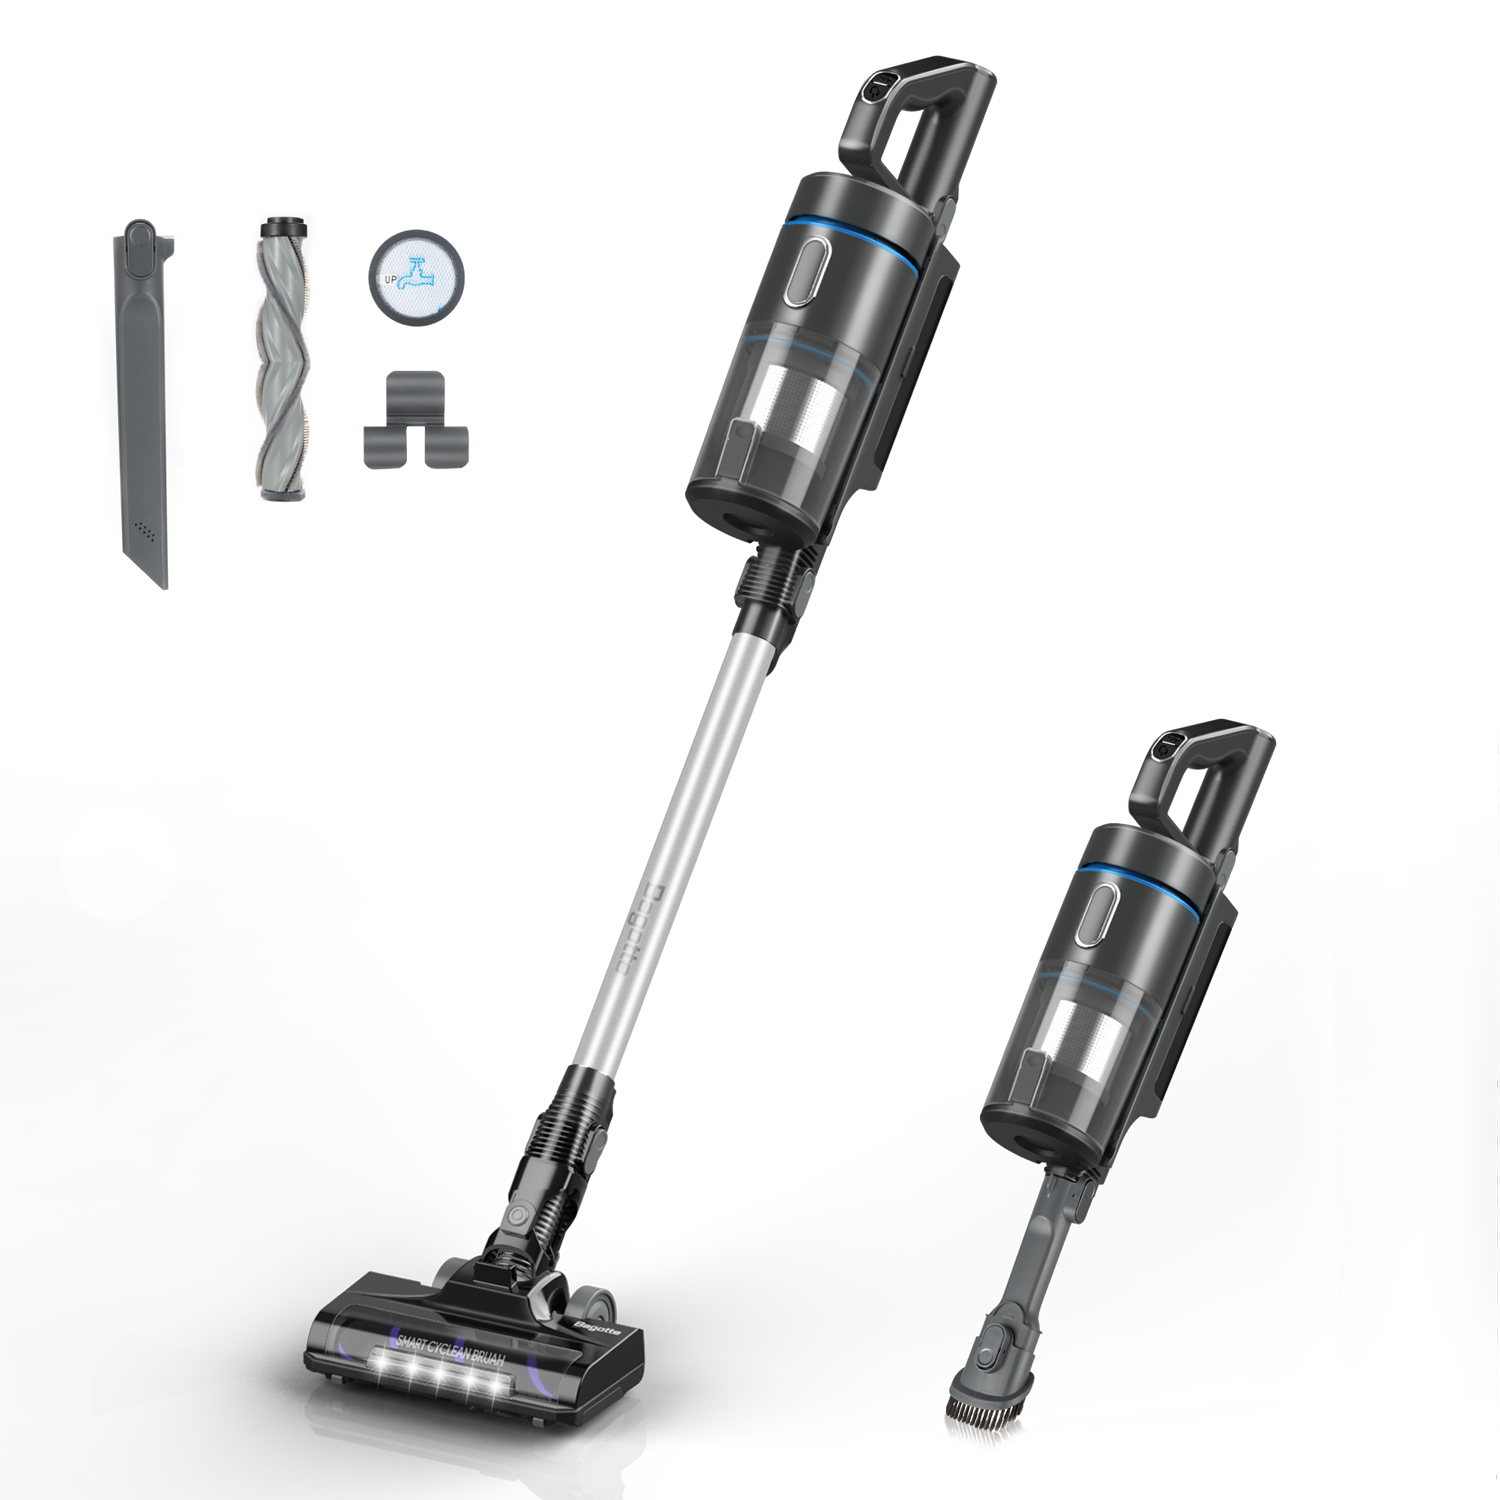 Bagotte BS800 Vacuum Cleaner